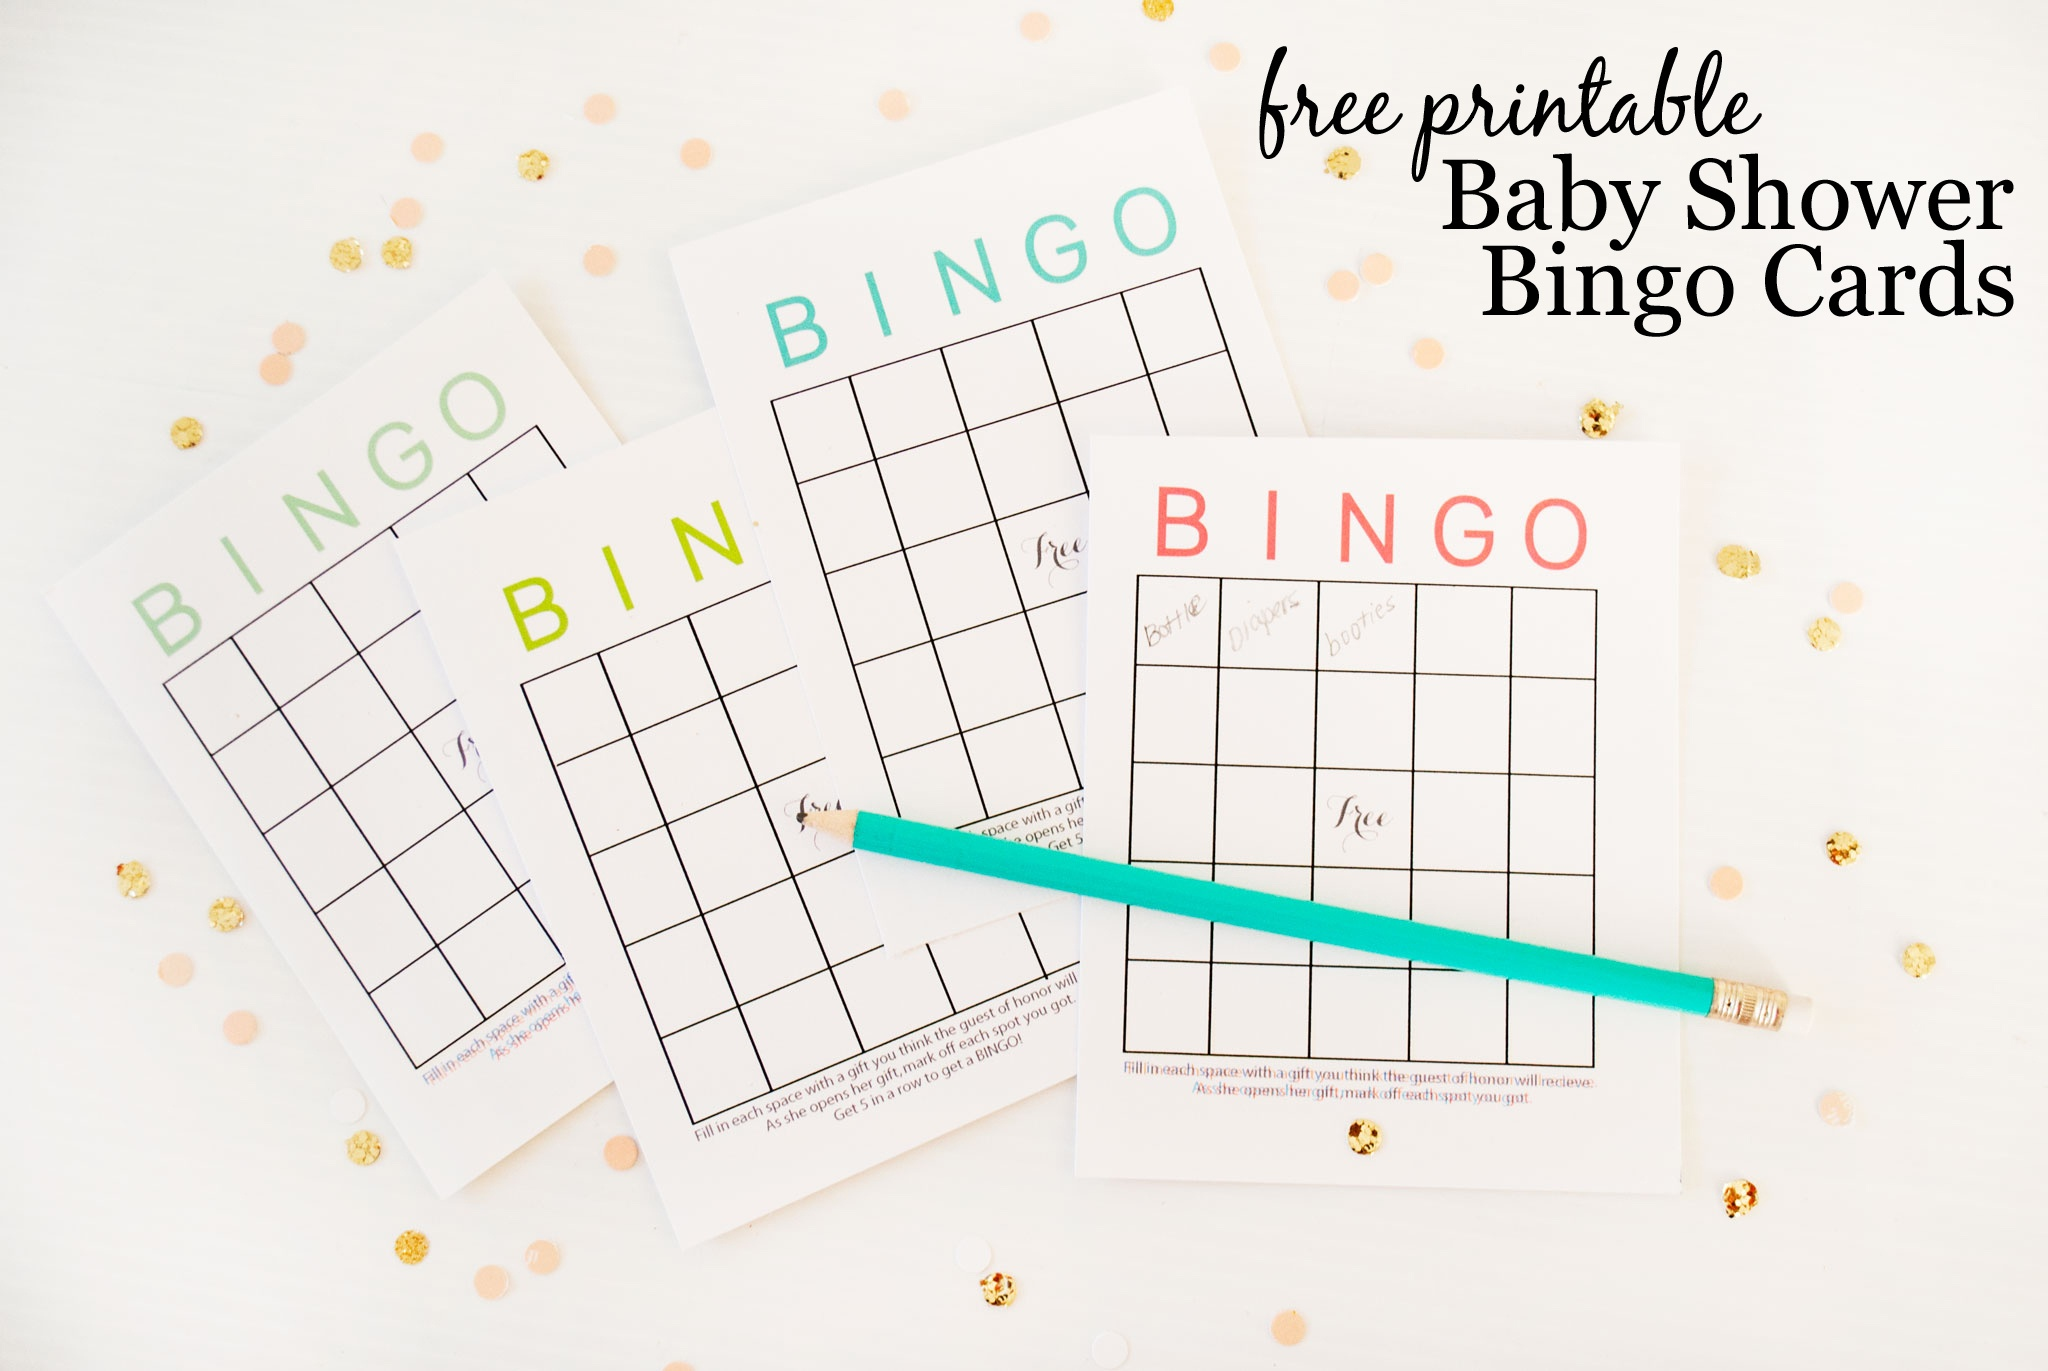 Free Printable Baby Shower Bingo Cards - Project Nursery - Baby Shower Bingo Template Free Printable